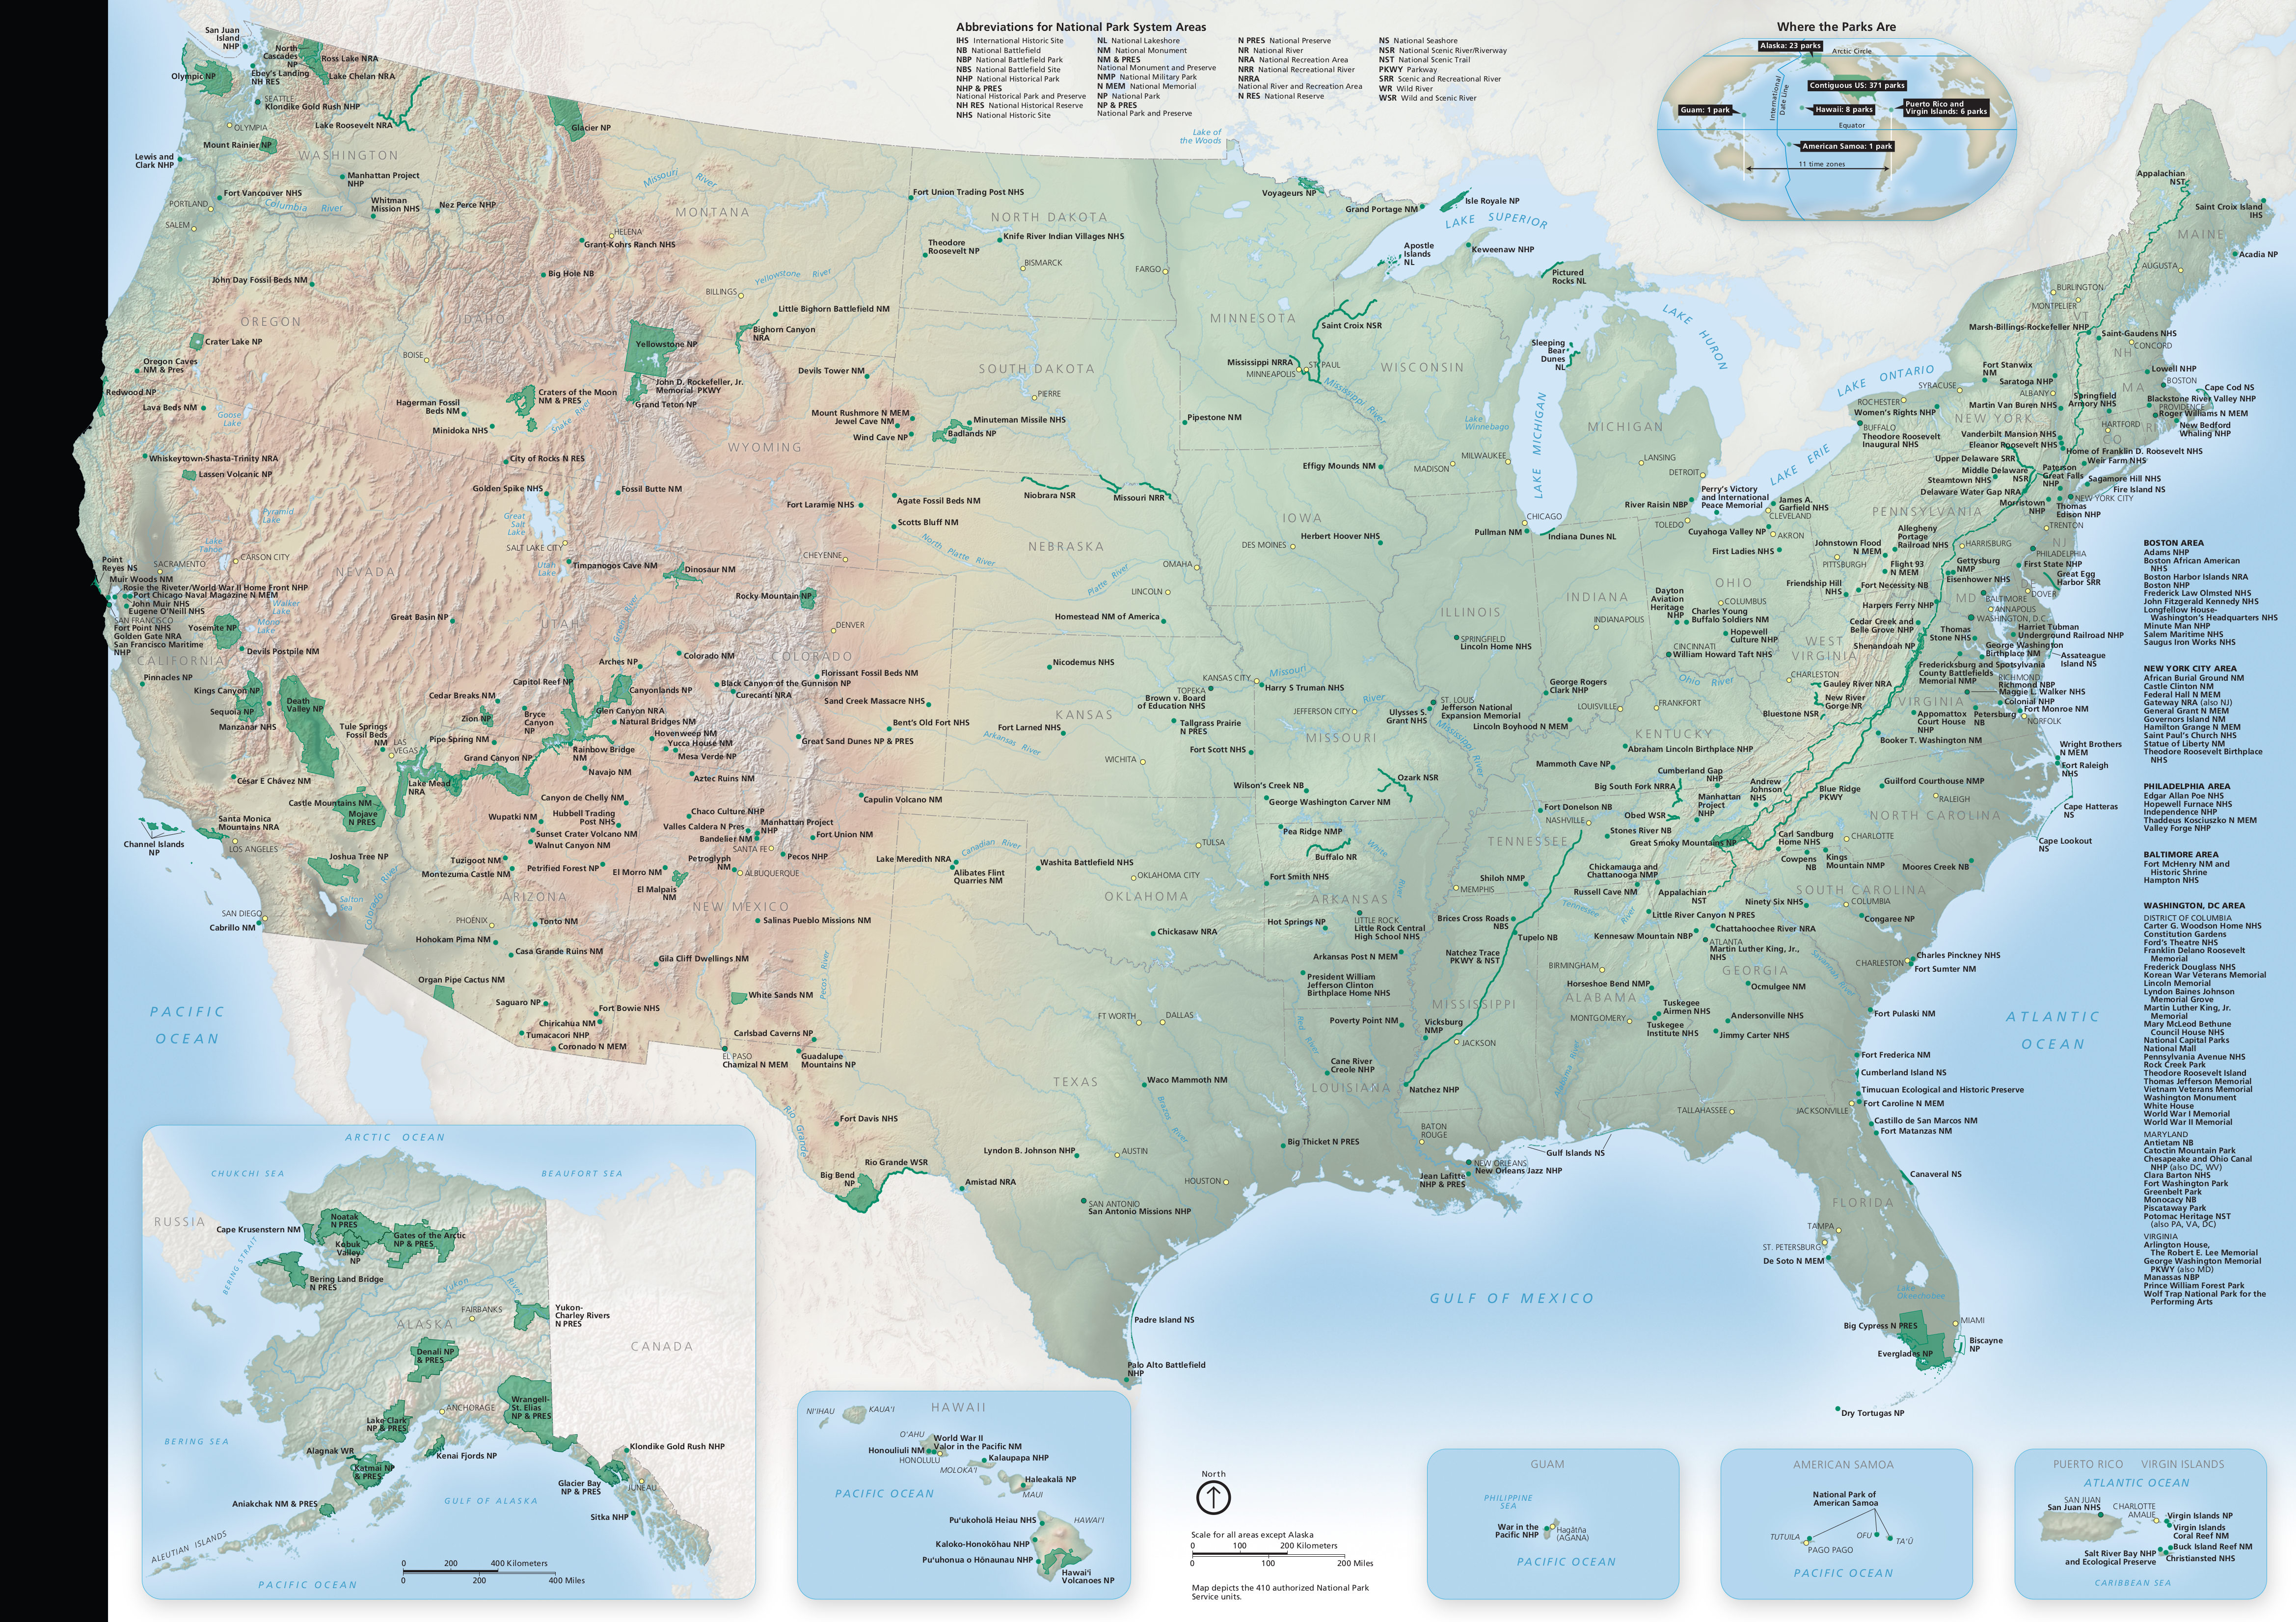 National Park Maps | NPMaps.com - just free maps, period.